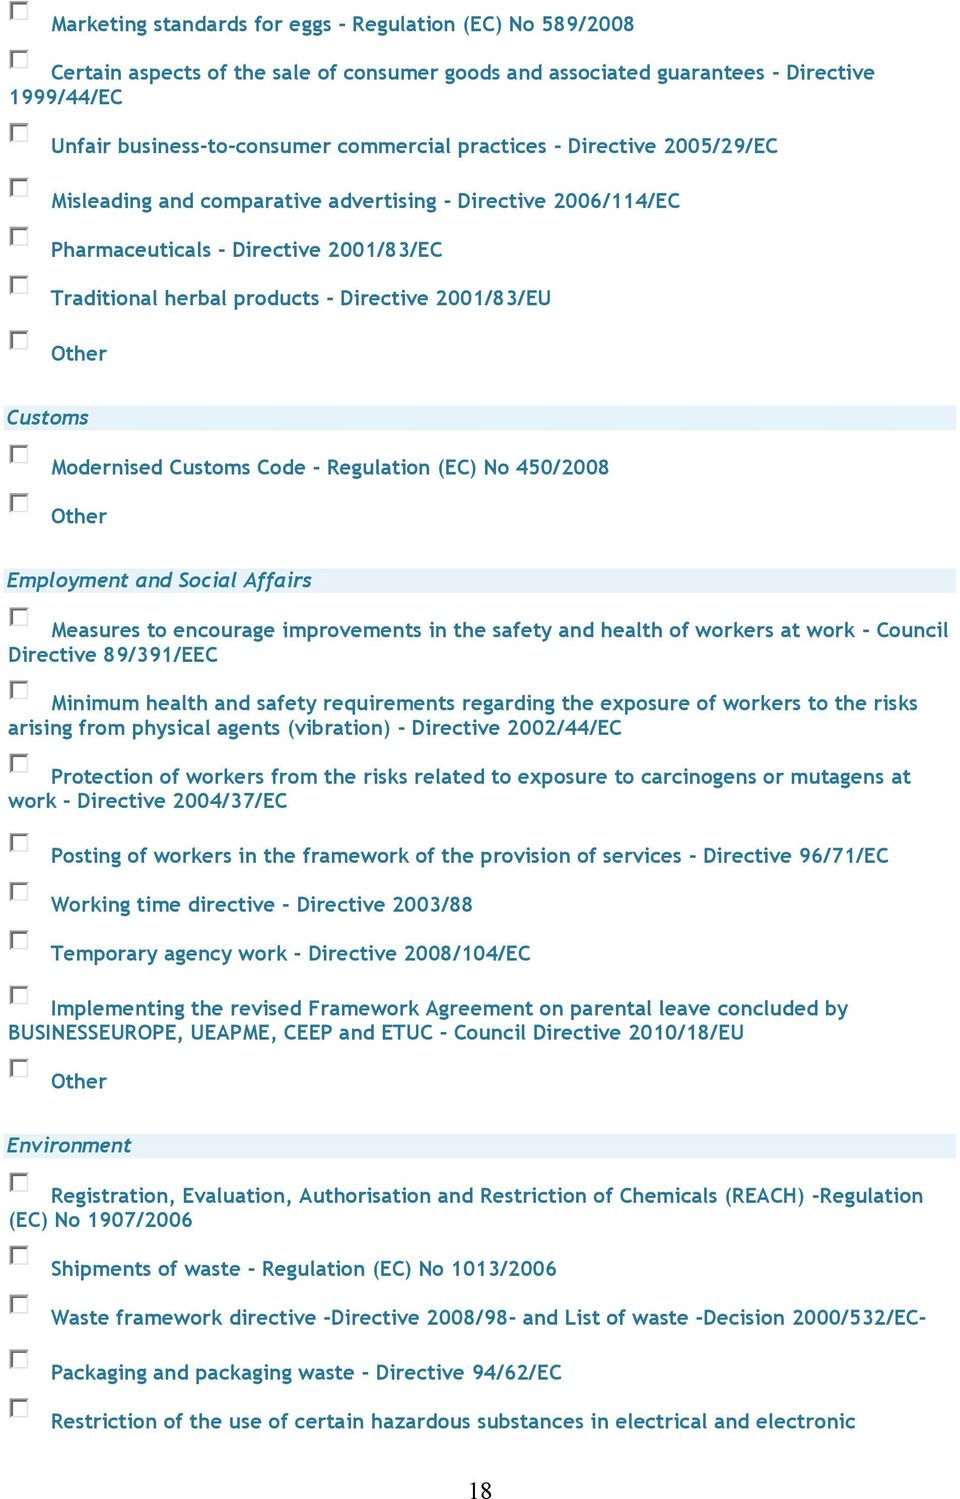 Modernised Customs Code - Regulation (EC) No 450/2008 Employment and Social Affairs Measures to encourage improvements in the safety and health of workers at work - Council Directive 89/391/EEC